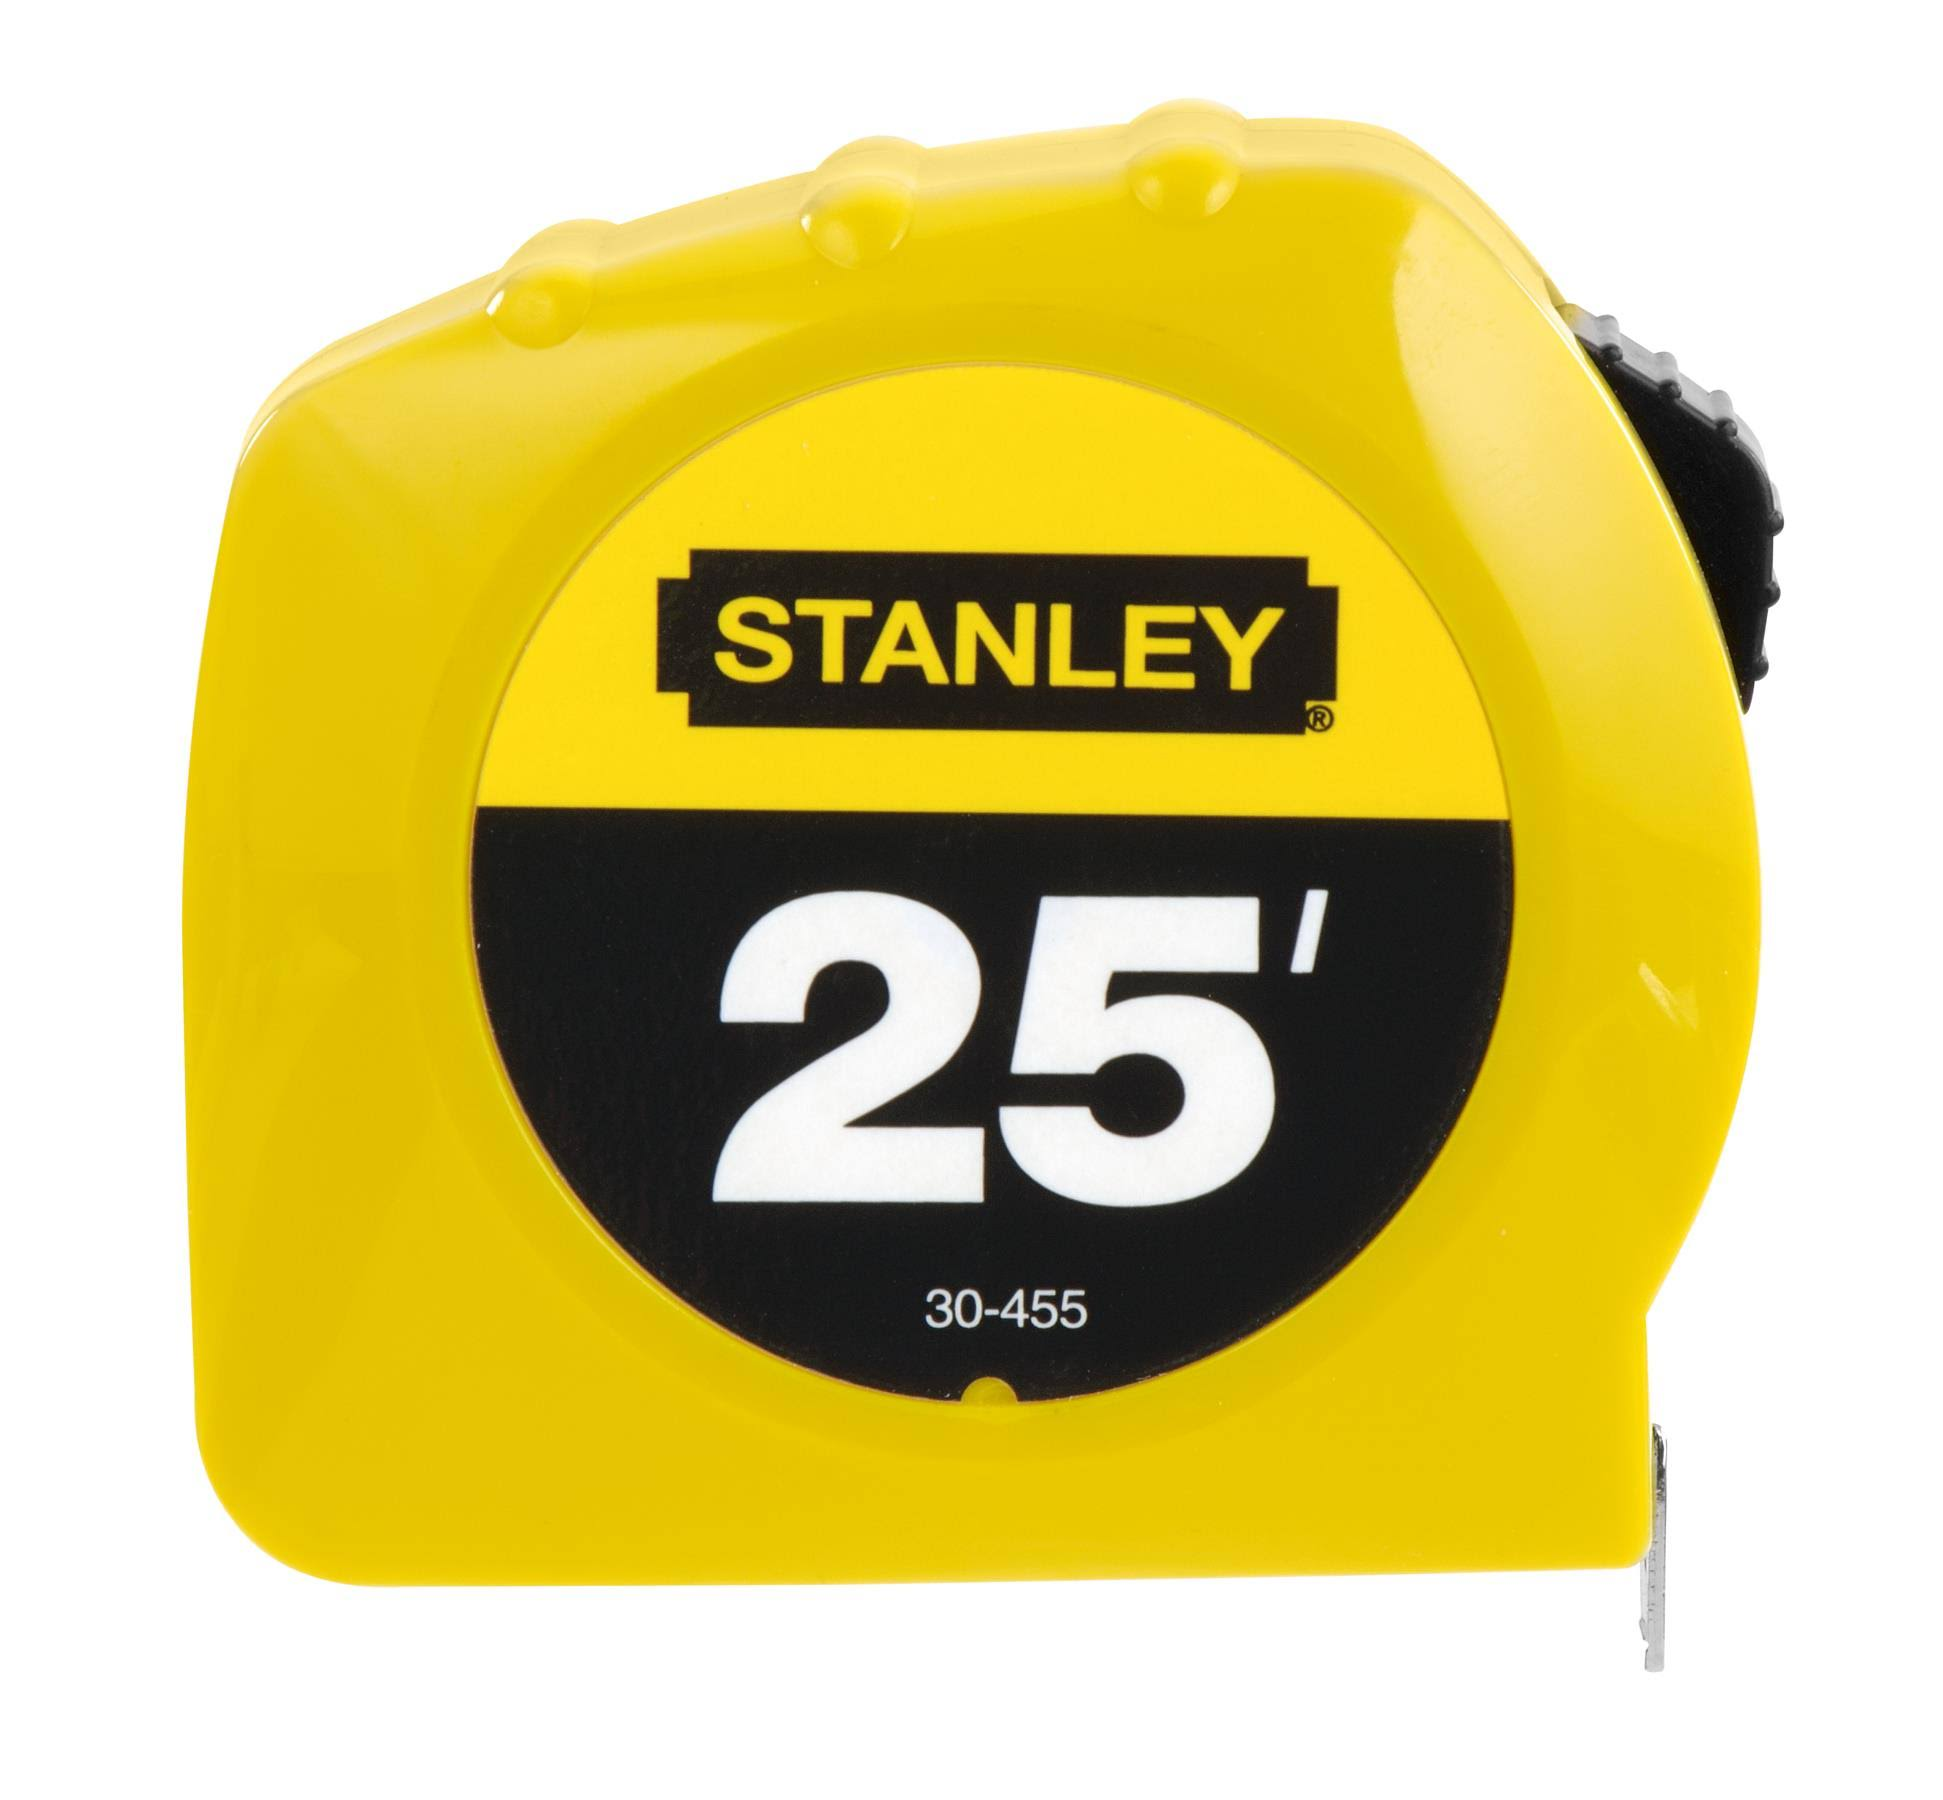 Stanley Tape Measure - Yellow